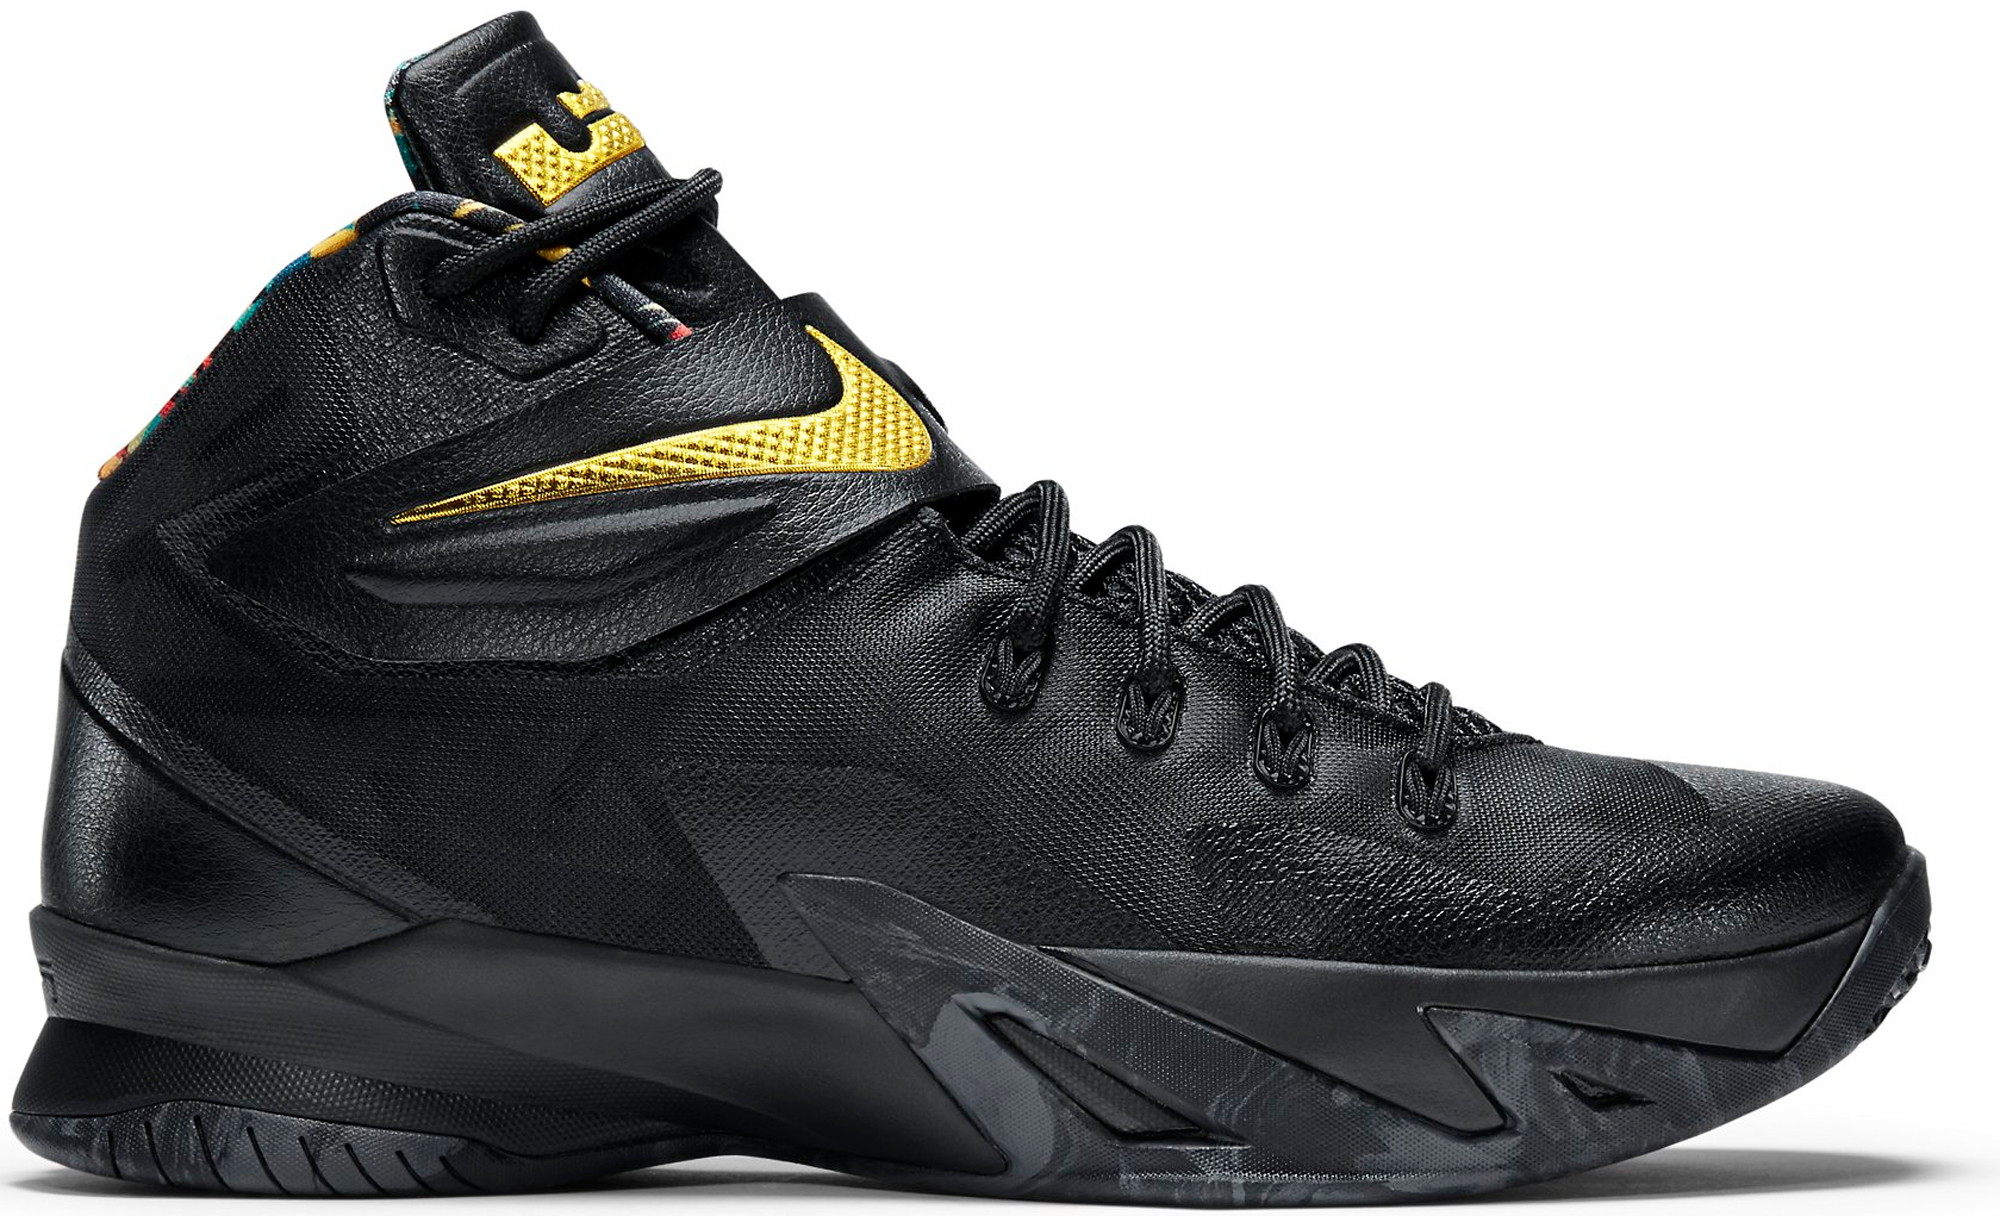 Nike LeBron Zoom Soldier 8 Watch the